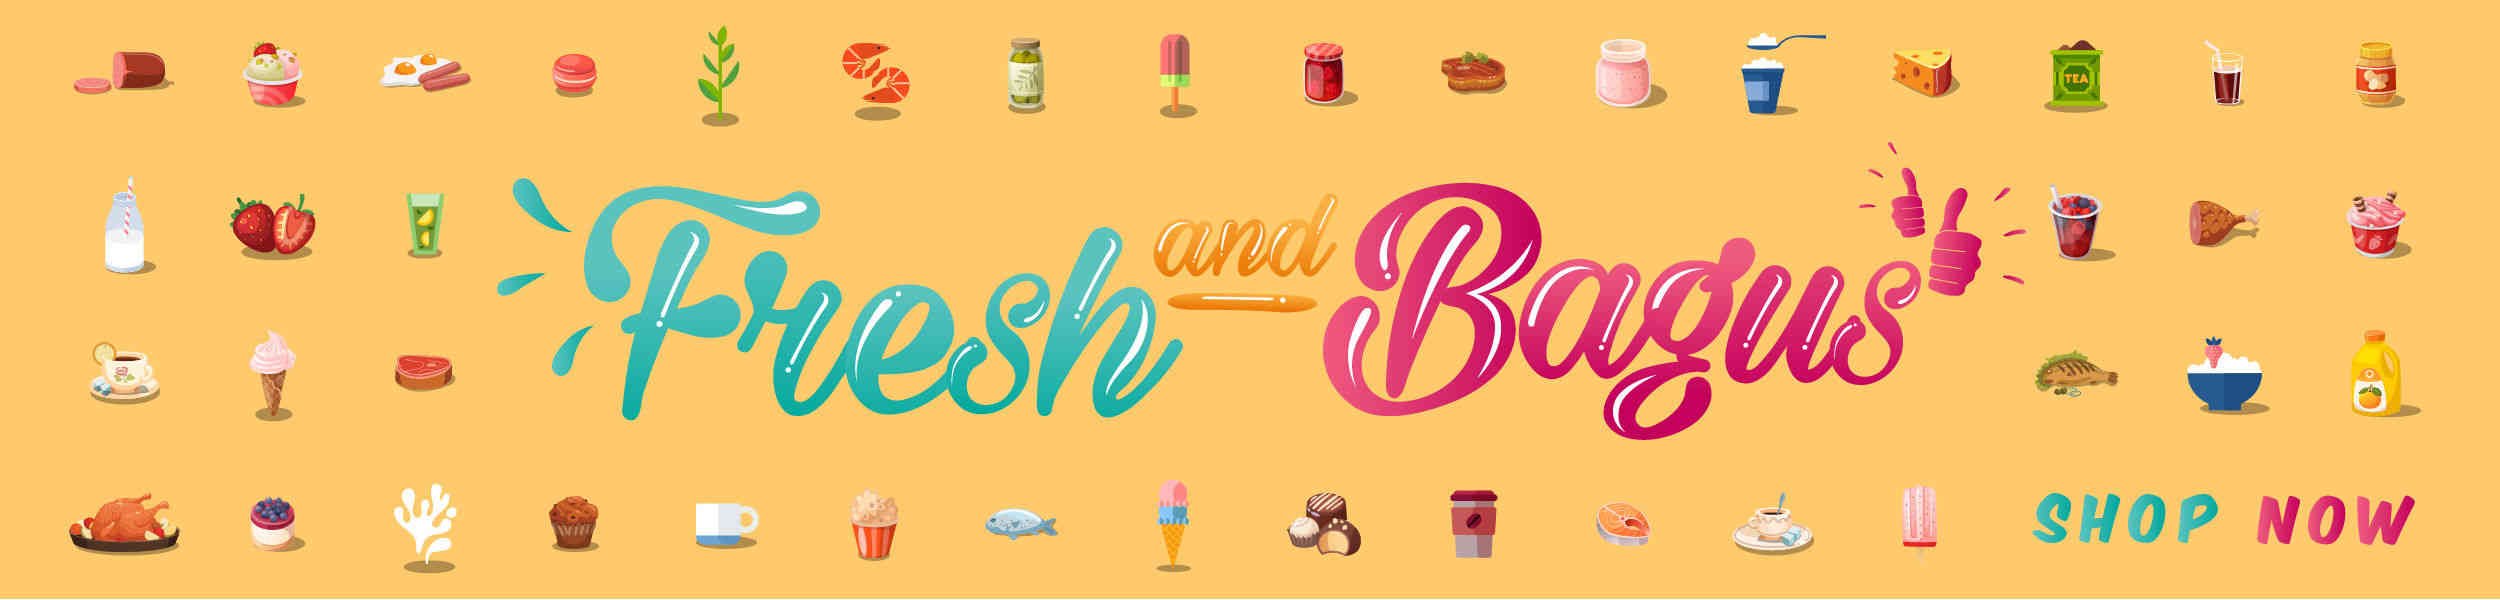 F&B Week (Fresh & Bagus)